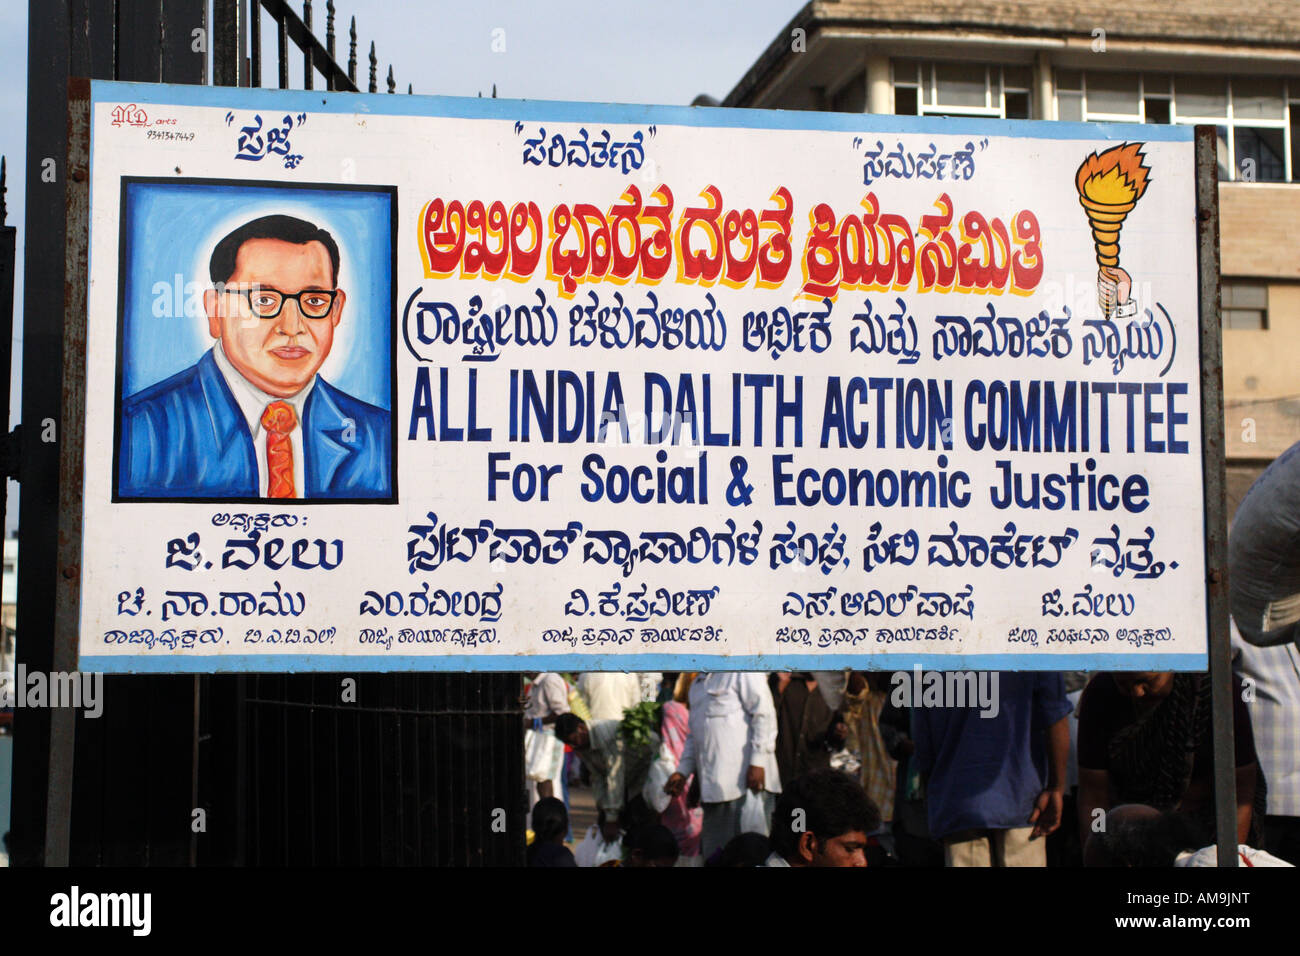 A sign for the Dalith Action Committee that stands at the City Market, Bangalore, India. - Stock Image